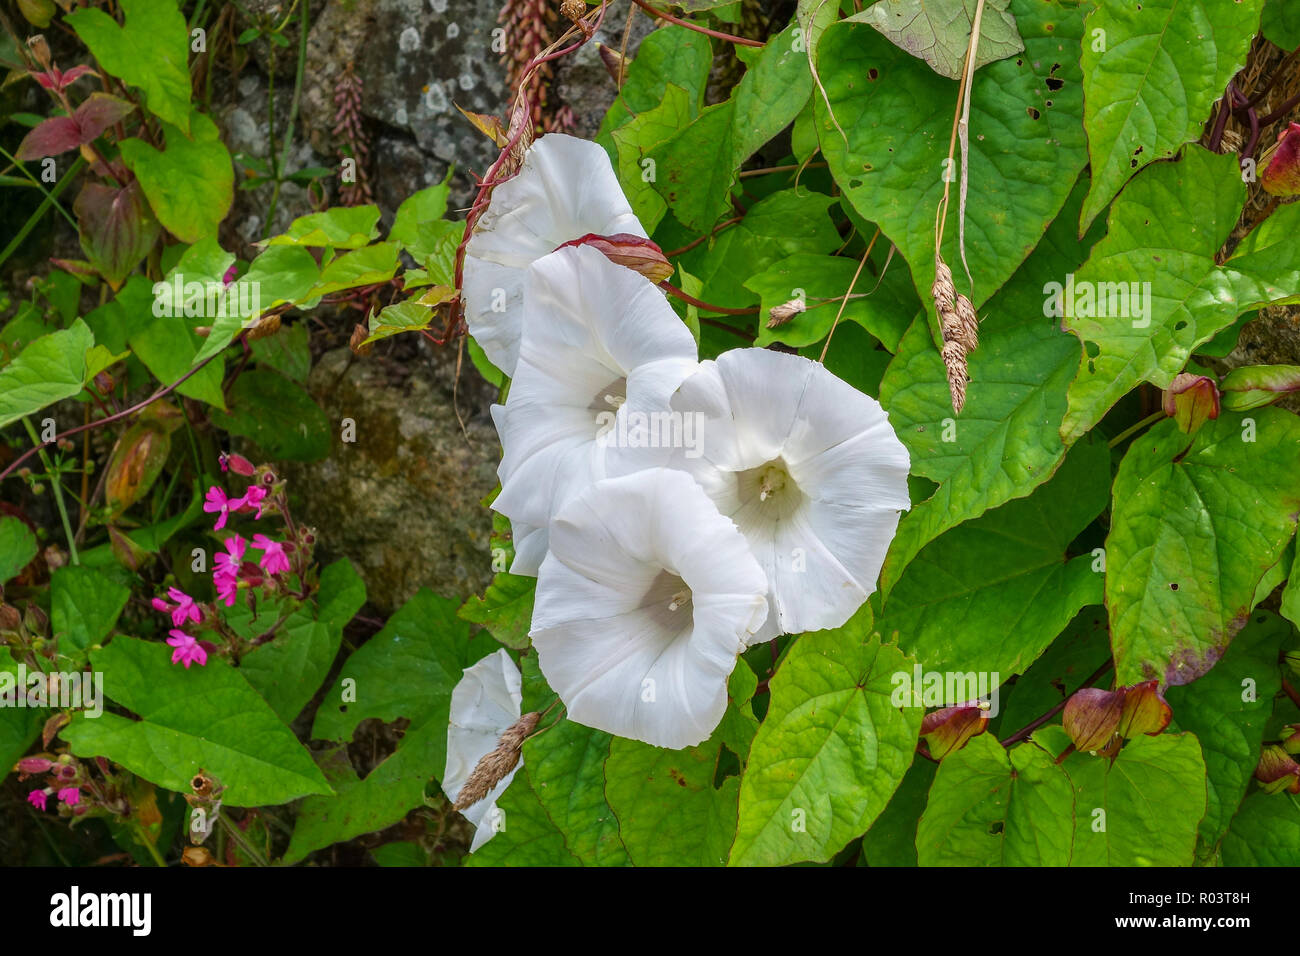 The white trumpet like flowers of Convolvulus arvensis, field bindweed, bindweed or morning glory - Stock Image